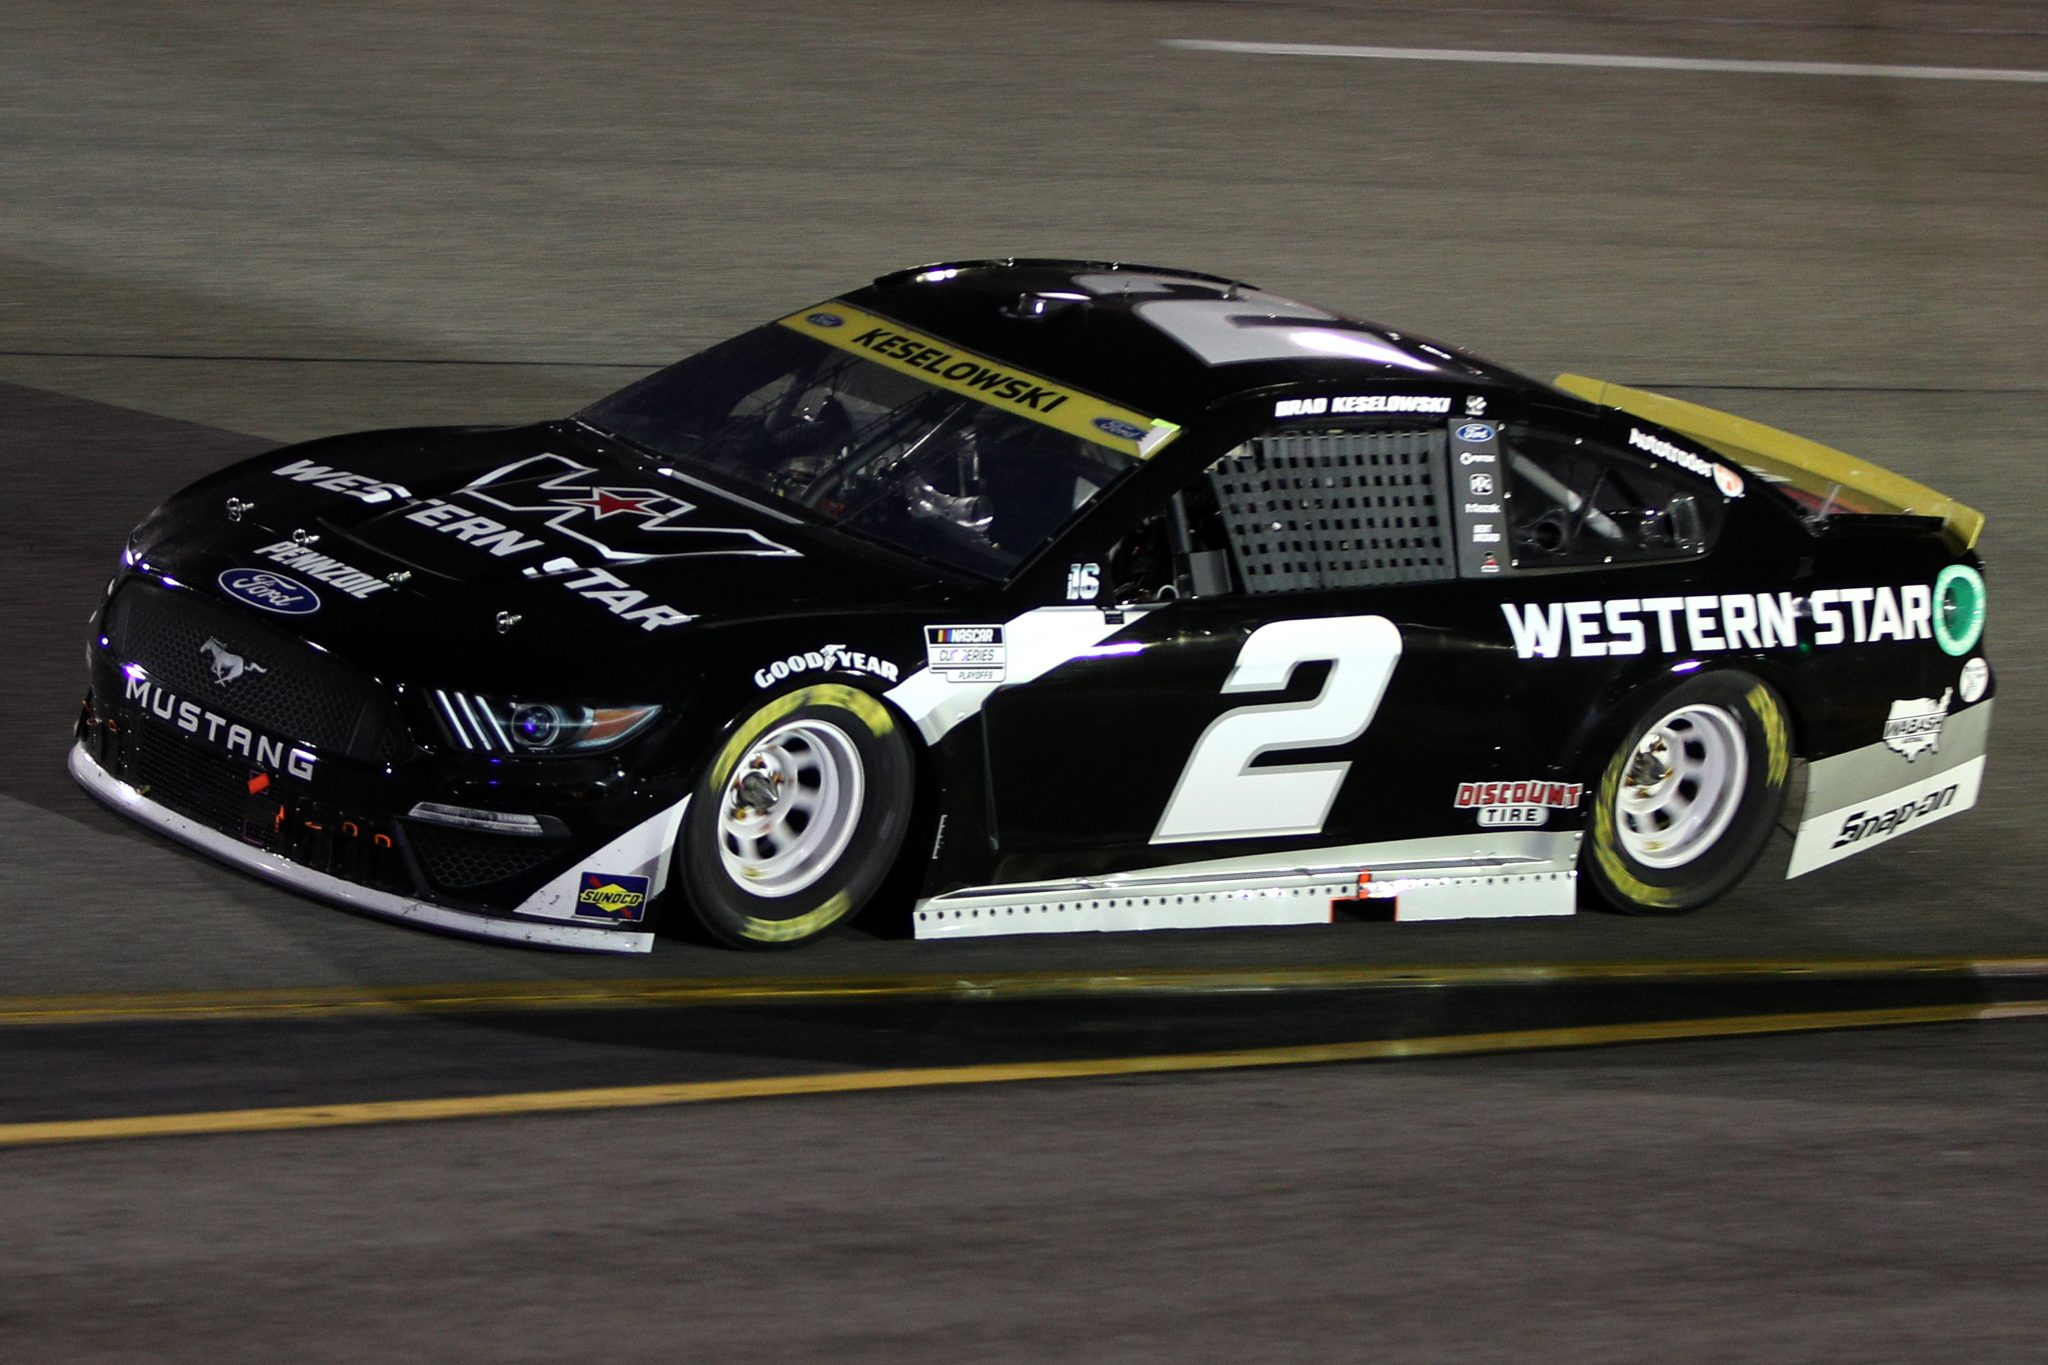 RICHMOND, VIRGINIA - SEPTEMBER 11: Brad Keselowski, driver of the #2 Western Star Ford, drives during the NASCAR Cup Series Federated Auto Parts 400 Salute to First Responders at Richmond Raceway on September 11, 2021 in Richmond, Virginia. (Photo by Sean Gardner/Getty Images)   Getty Images